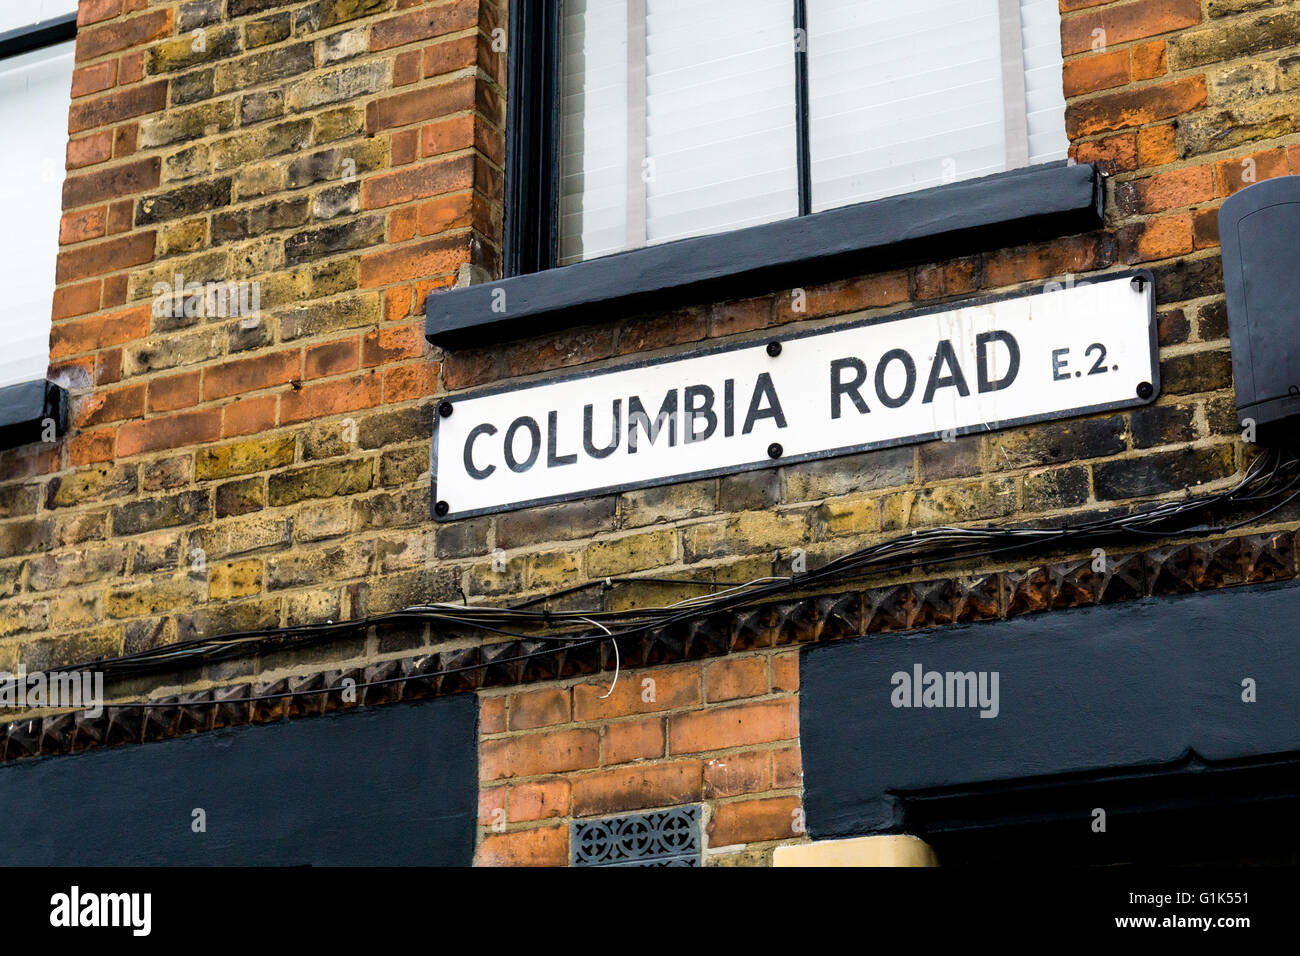 Columbia Road street sign in London E2. This road hosts a popular weekly flower market on Sundays - Stock Image